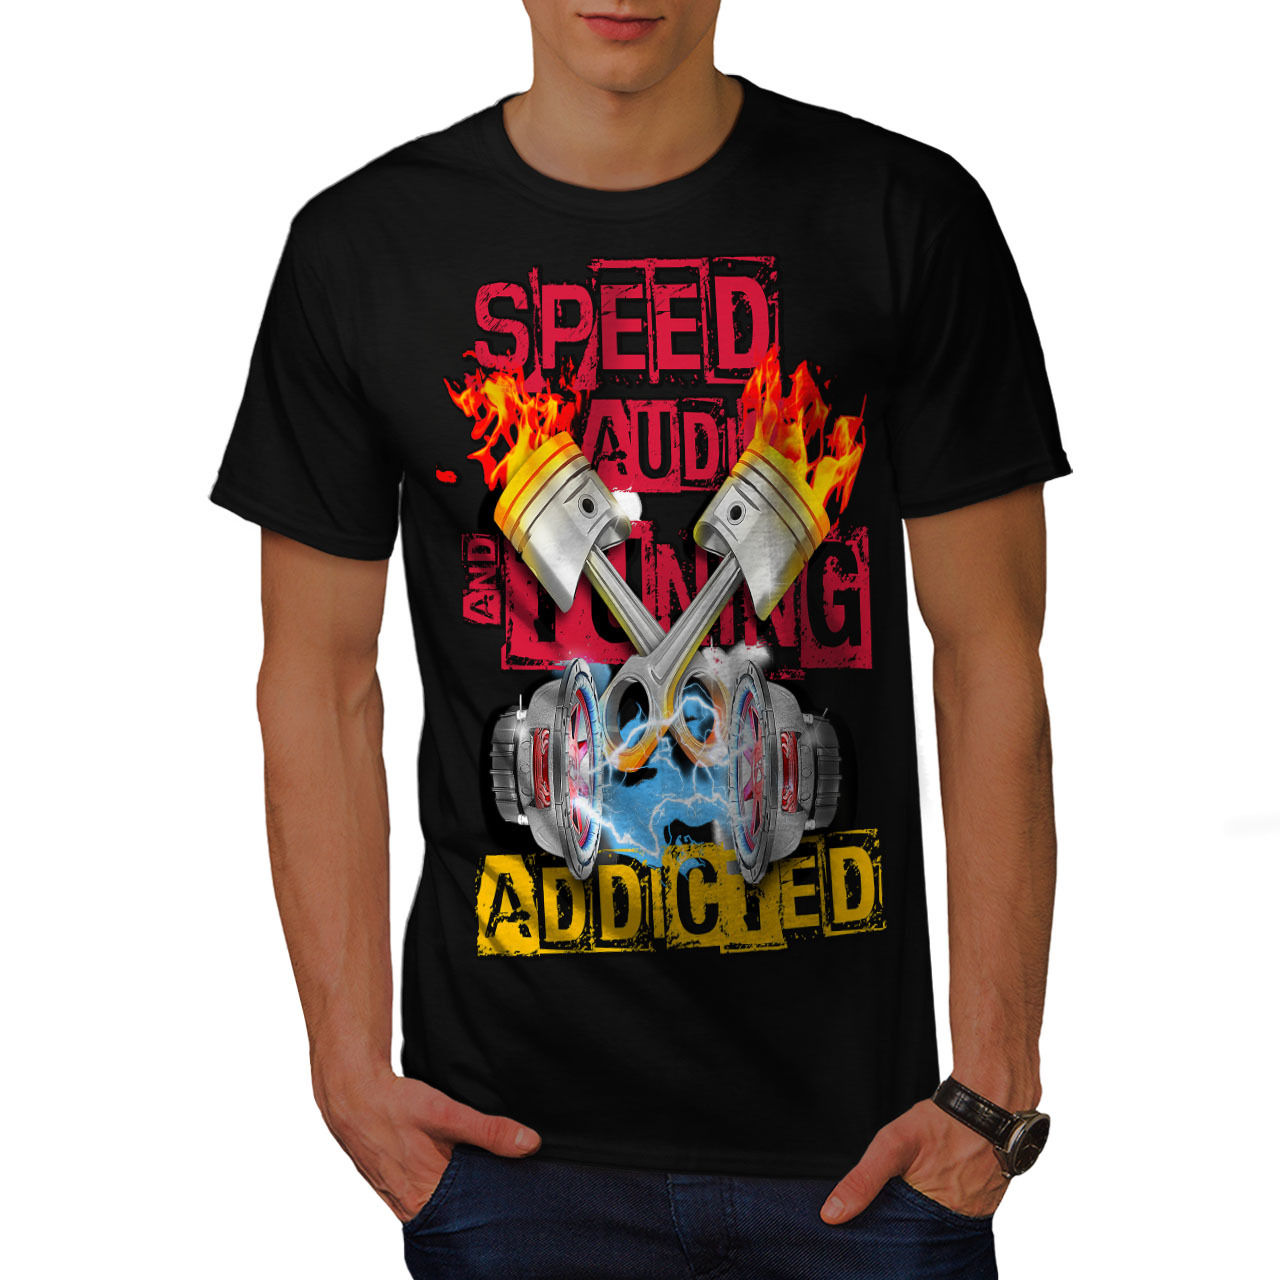 554c41cae7e Speed Addicted Fashion Shirt Men T-shirt and 50 similar items.  D2818xmxrxbxmain